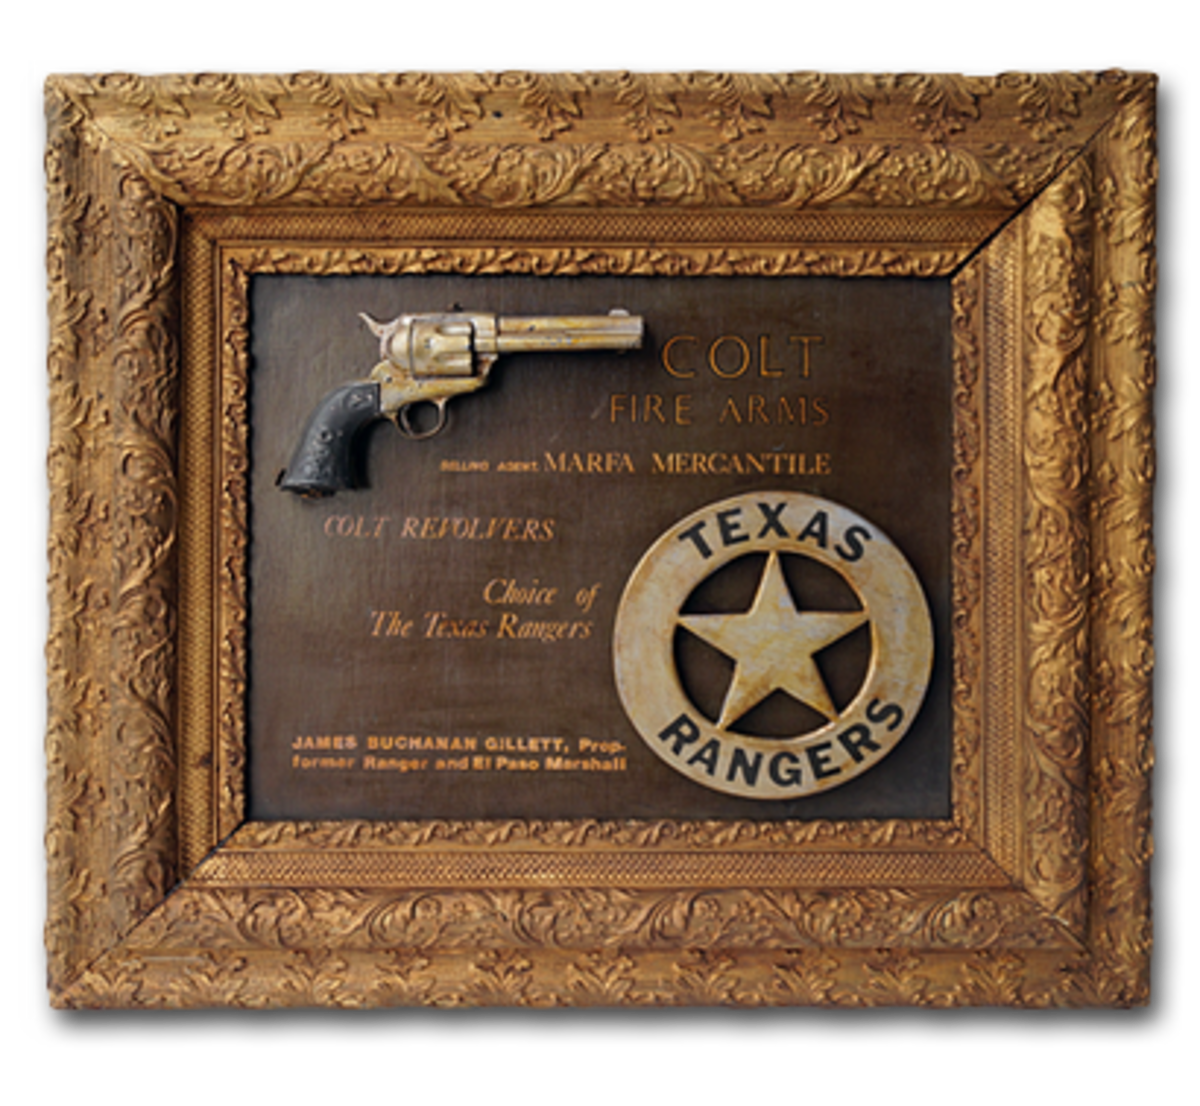 "Advertising painted on board for Colt Revolvers with a specimen of the product mounted. Colt Revolvers The Choice of the Texas Rangers with a mounted Texas Rangers emblem. James Buchanan Gillett, Proprietor, former Ranger and El Paso Marshall. On the back, printed letters Colt Adev 583 30 Marfa-Texas 26 1/2""H. x 20"" W. Estimate: $2,000 - 3,000"